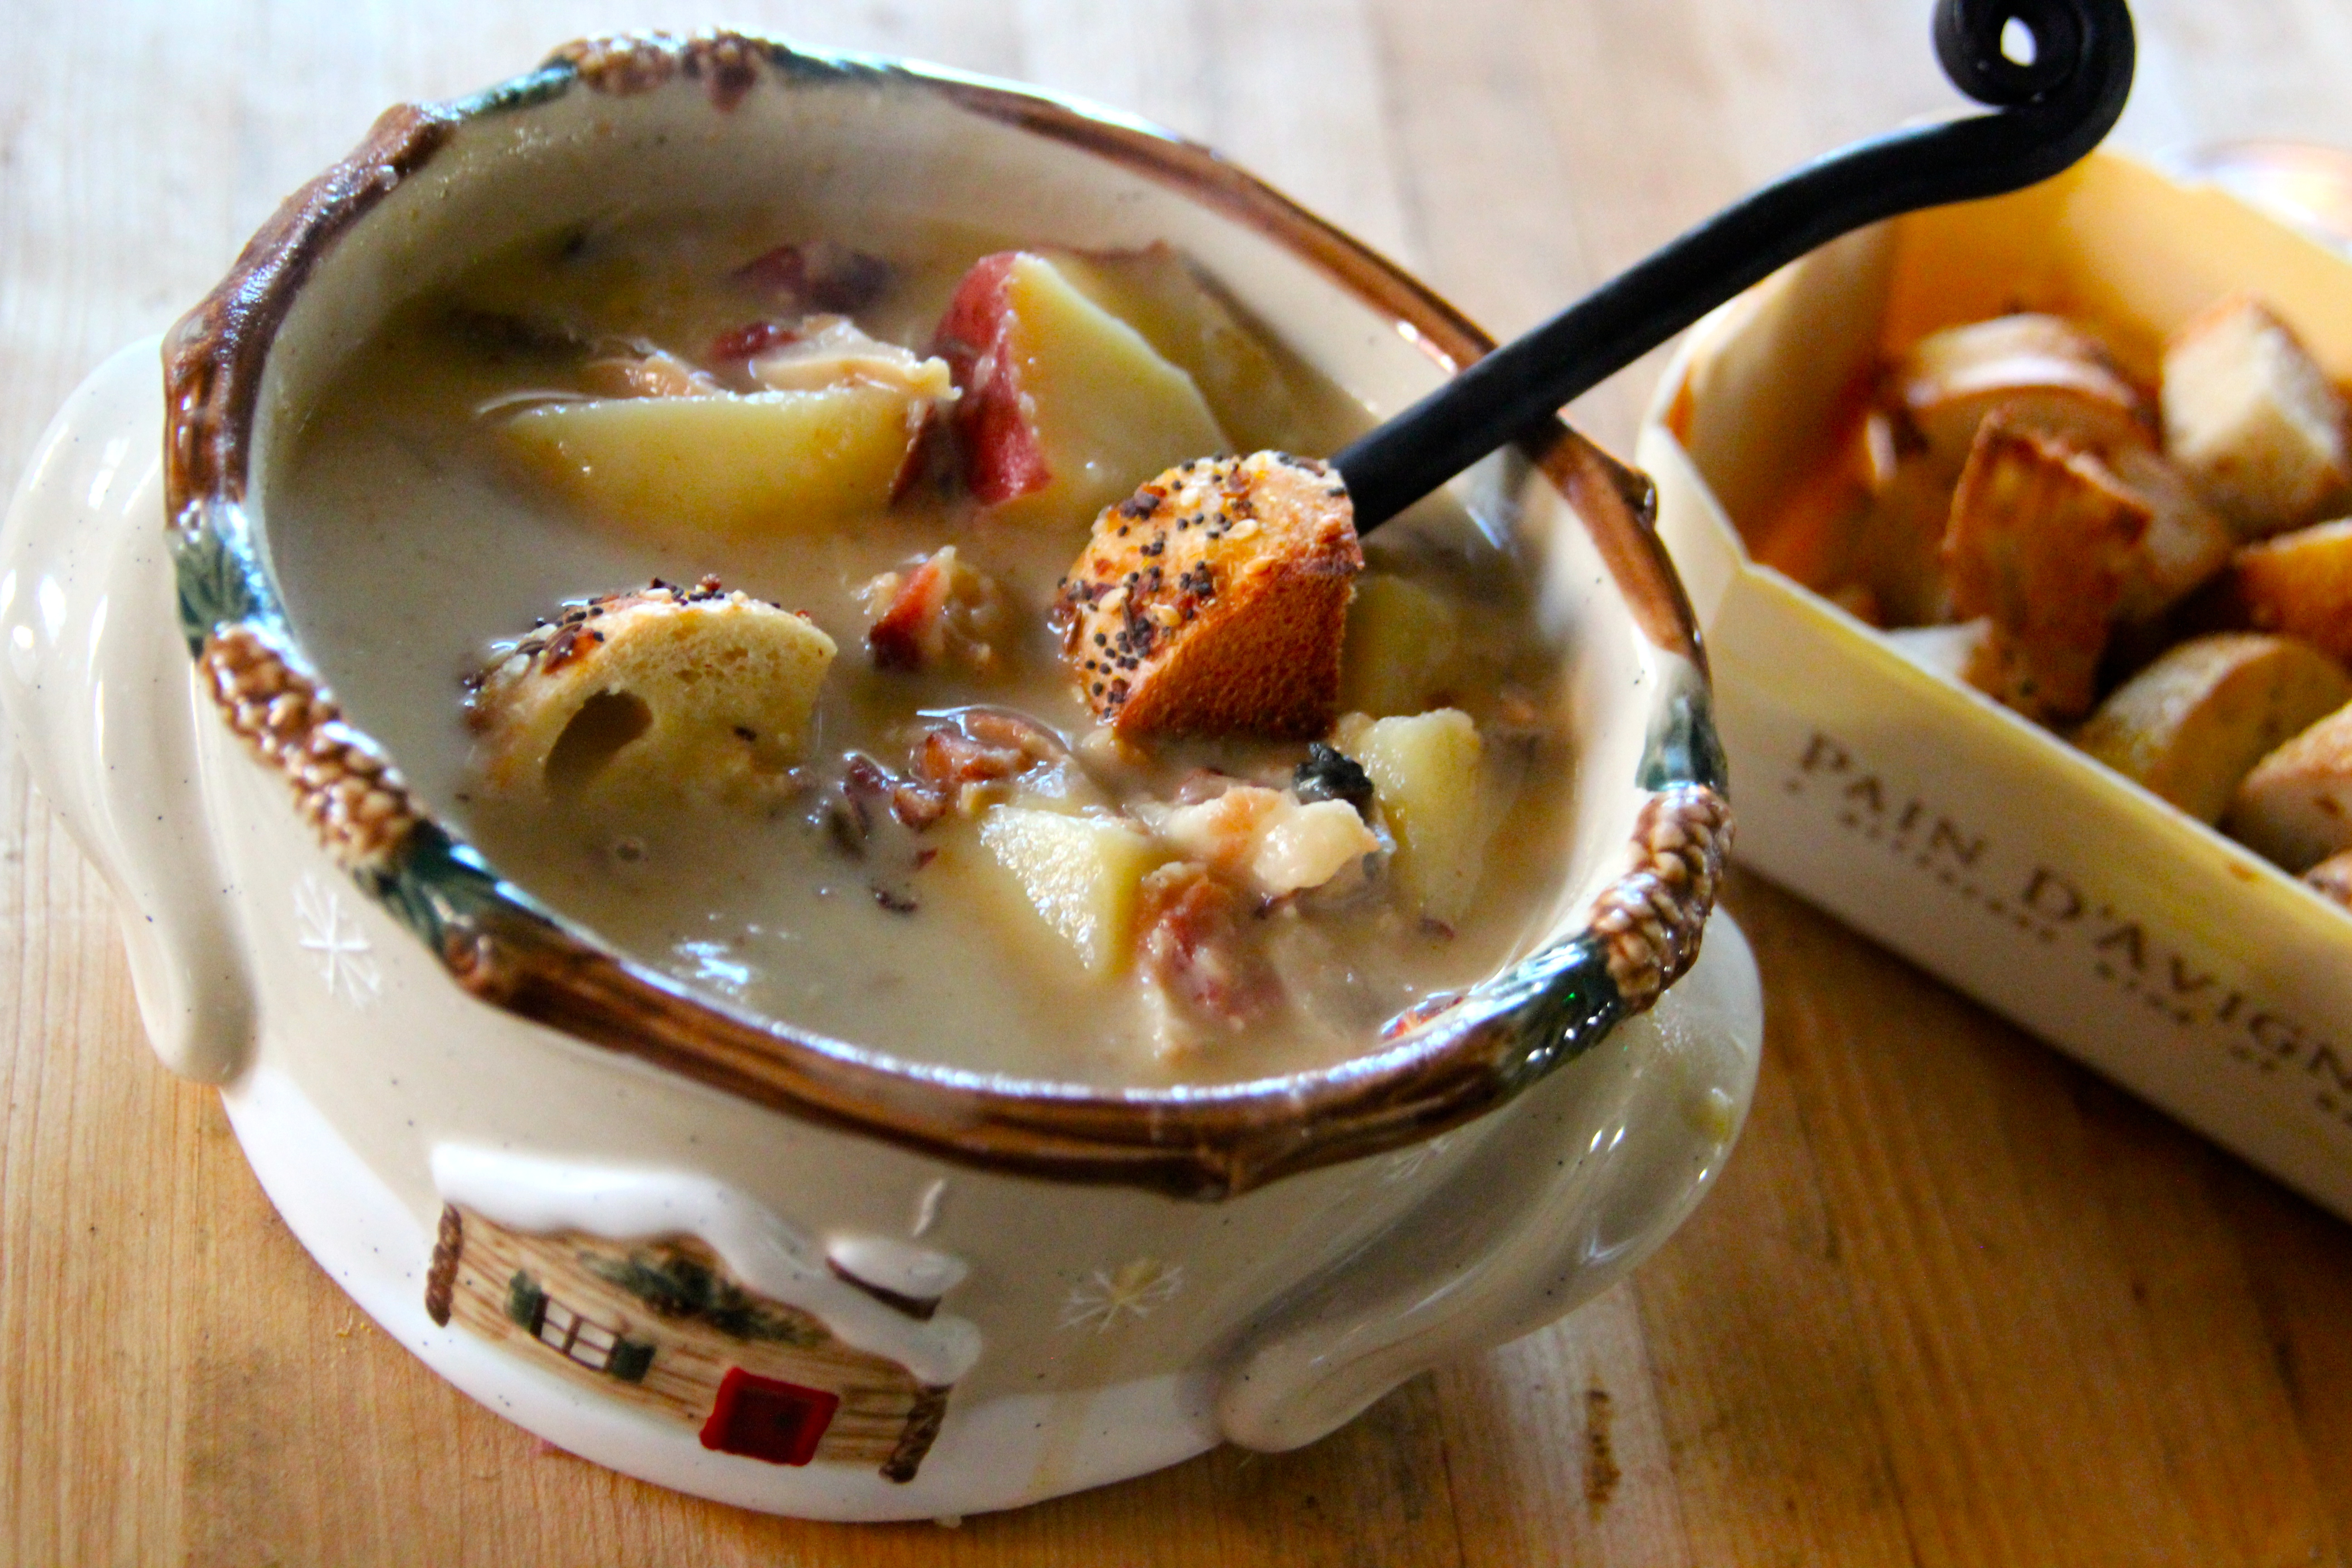 New England Clam Chowder, clam chowder, chowder, French Cuisine, potato, soup, easy recipe